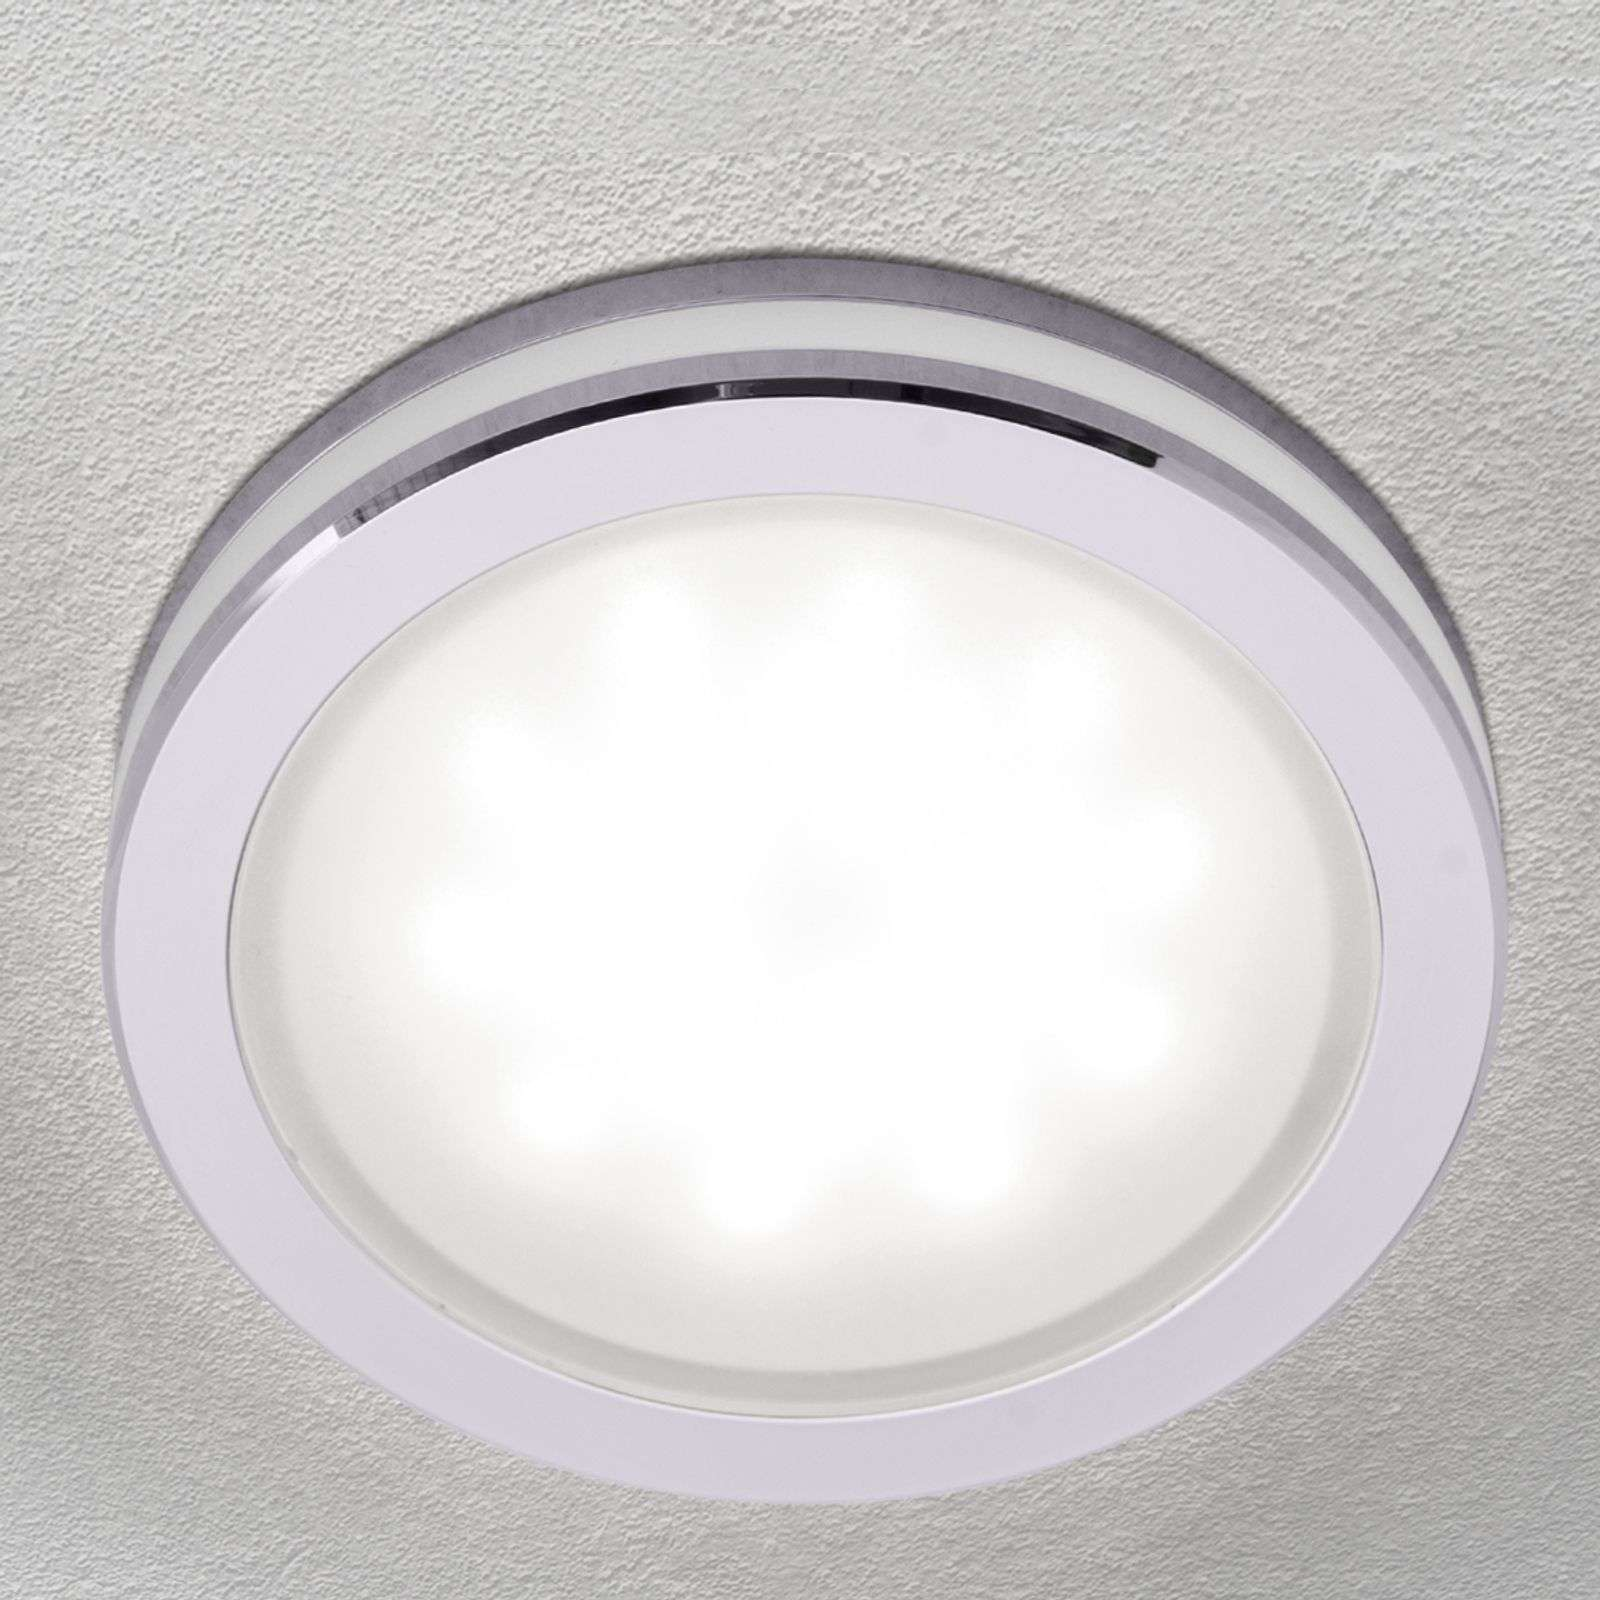 Plafonnier encastrable LED rond Finnian, dimmable